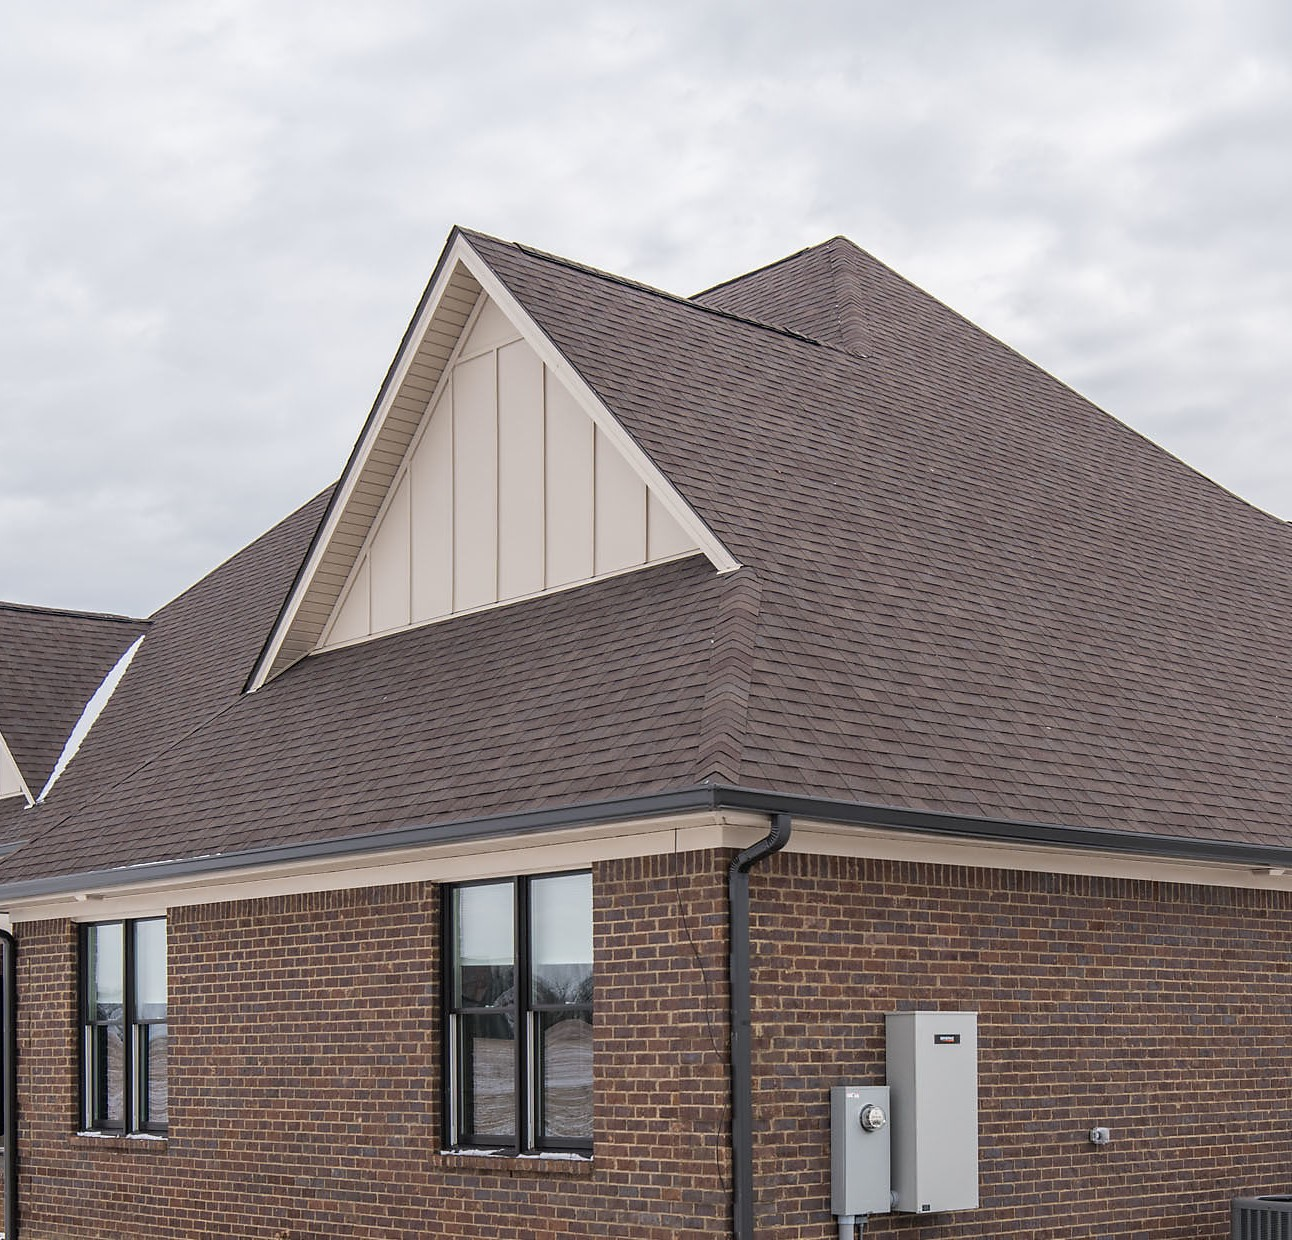 When it comes to roof and gutter replacement in Lexington, KY, turn to the roofing experts at Mulberry Homes.